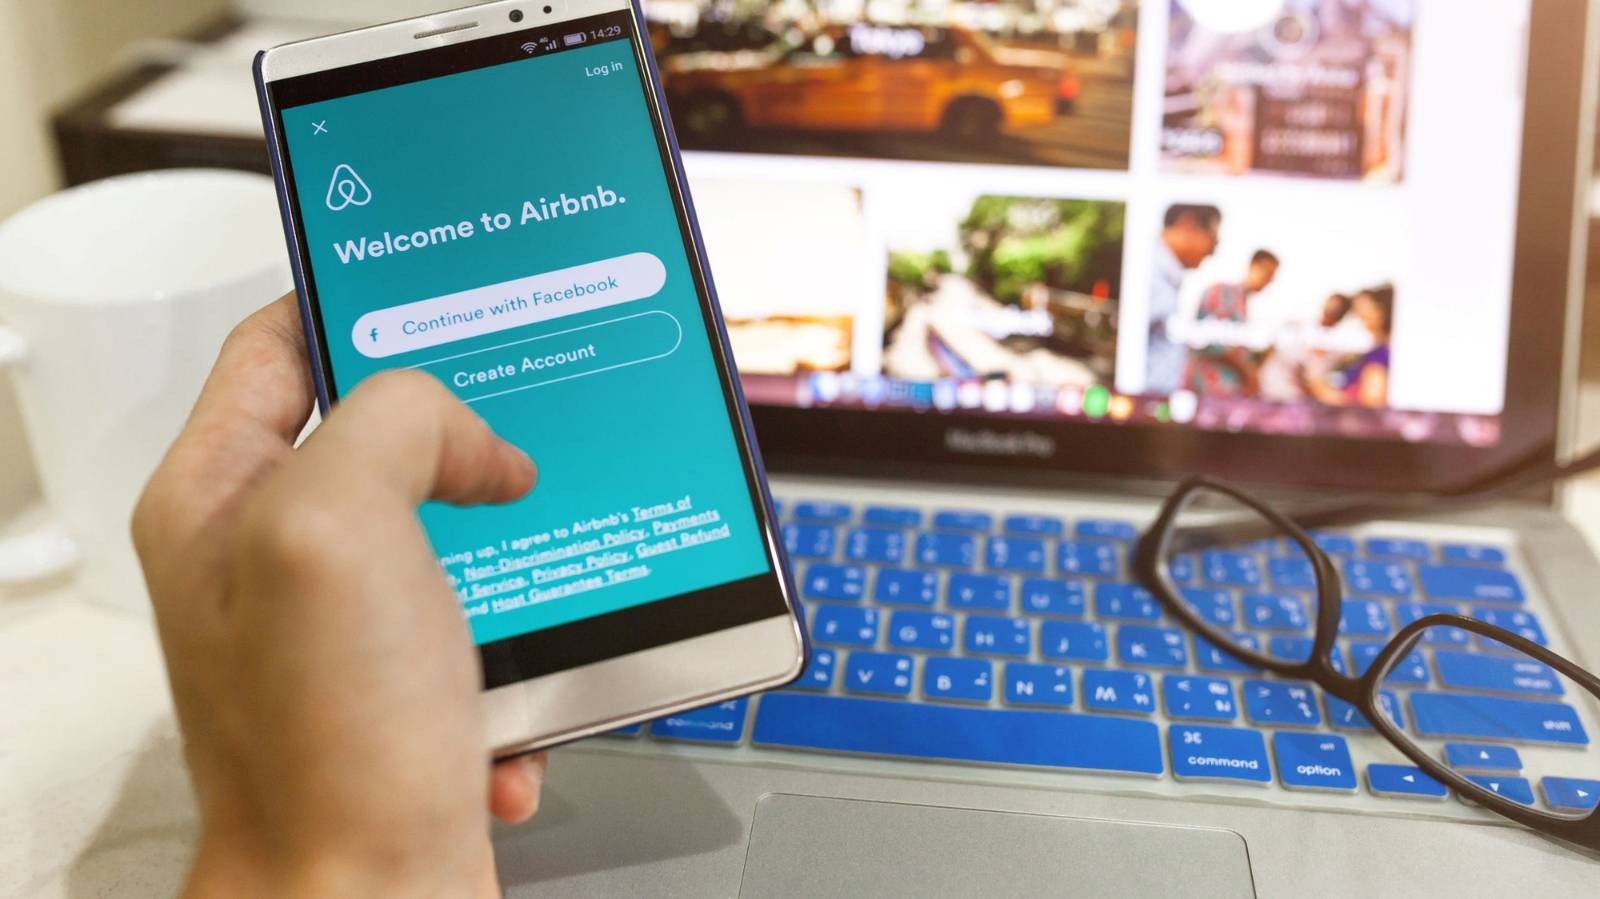 When your living room is your business: Sociologist does her PhD on Airbnb